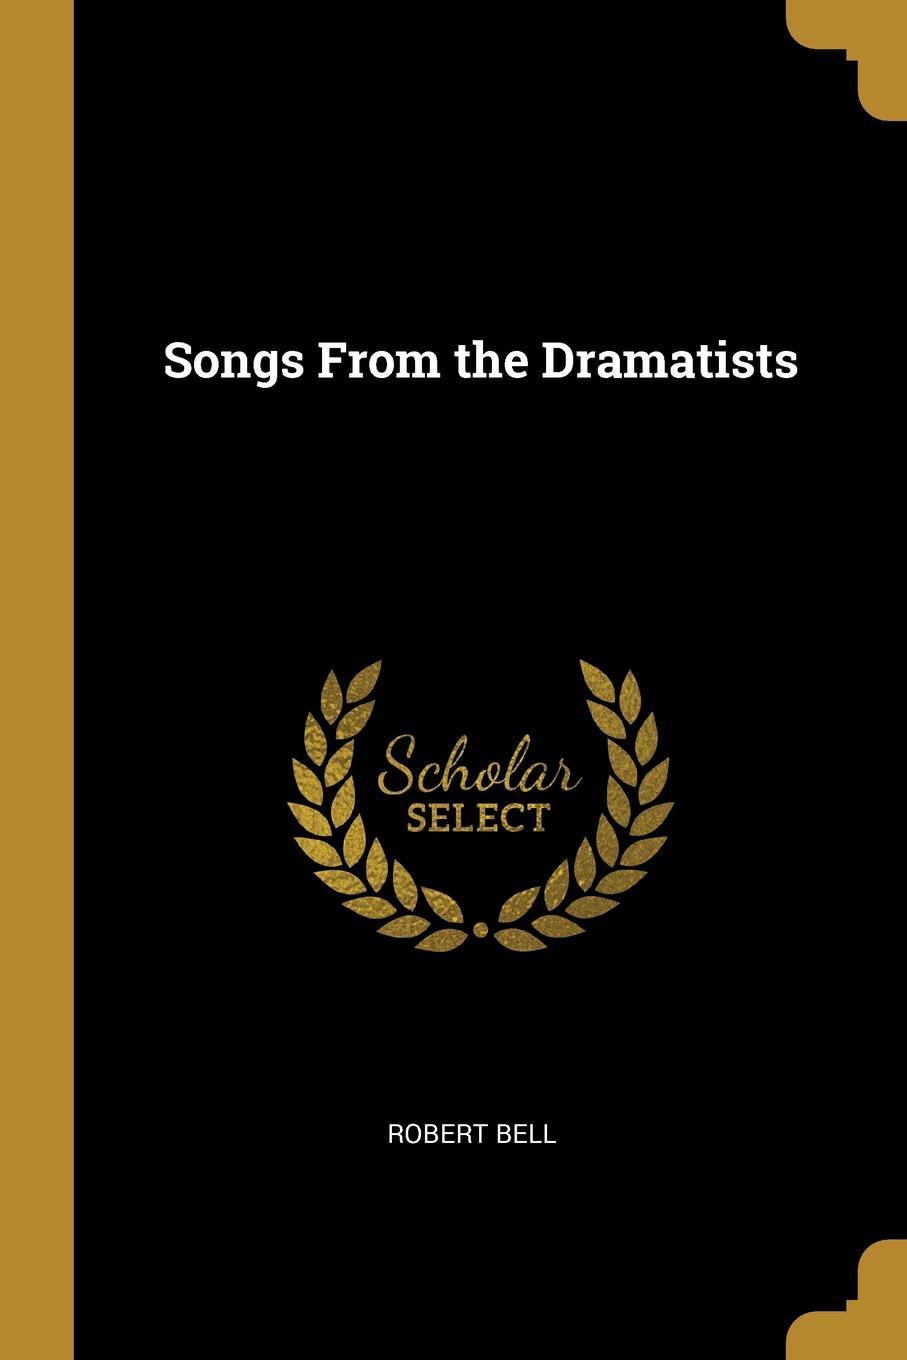 Robert Bell. Songs From the Dramatists